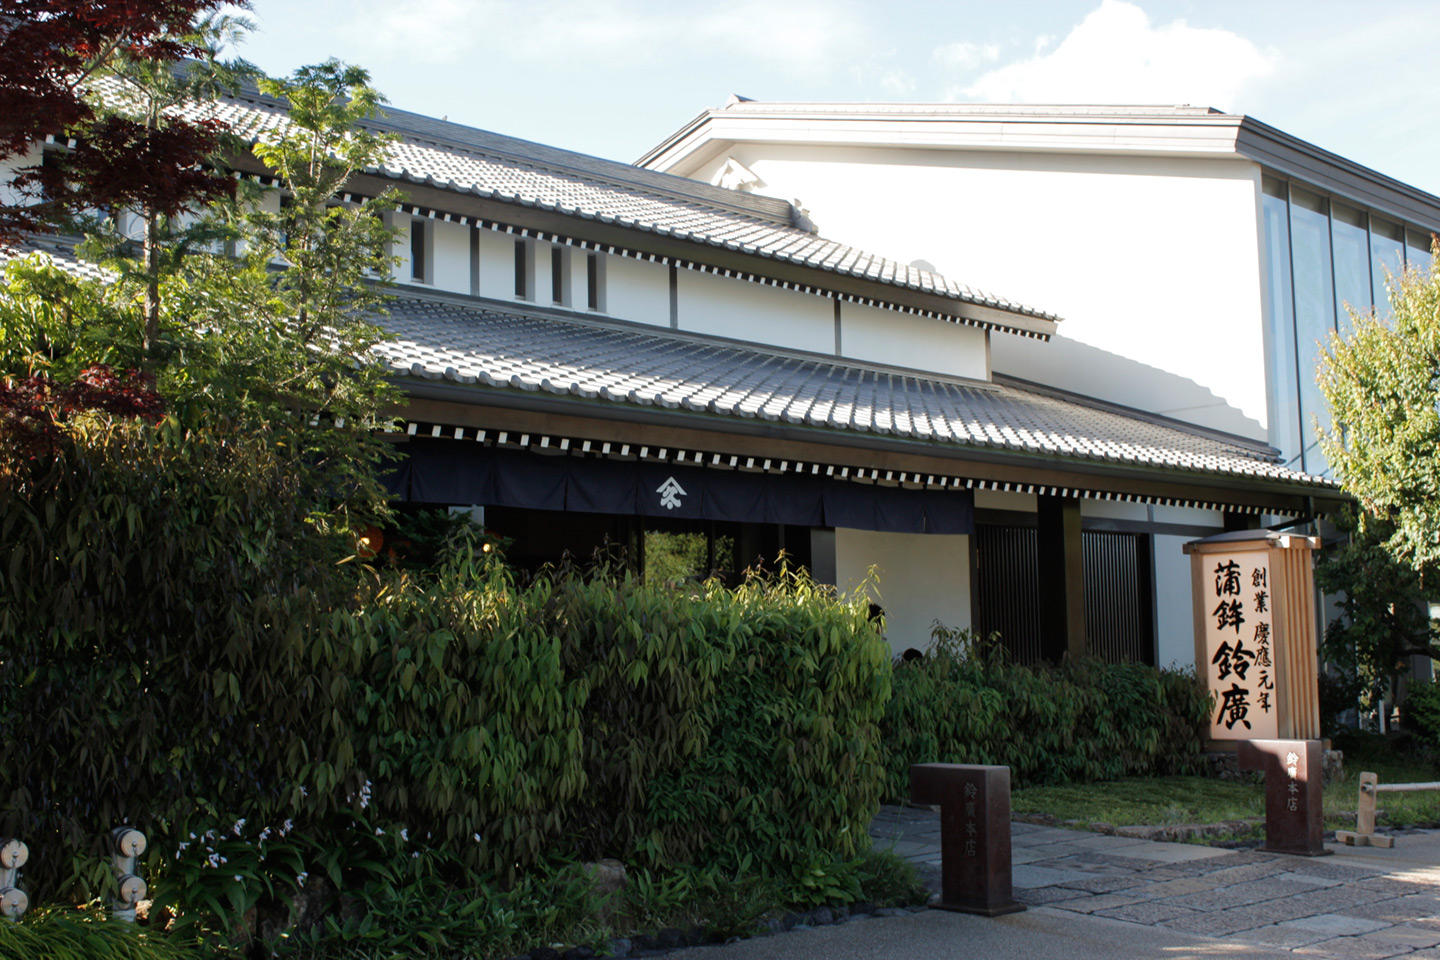 outside the kamaboko museum